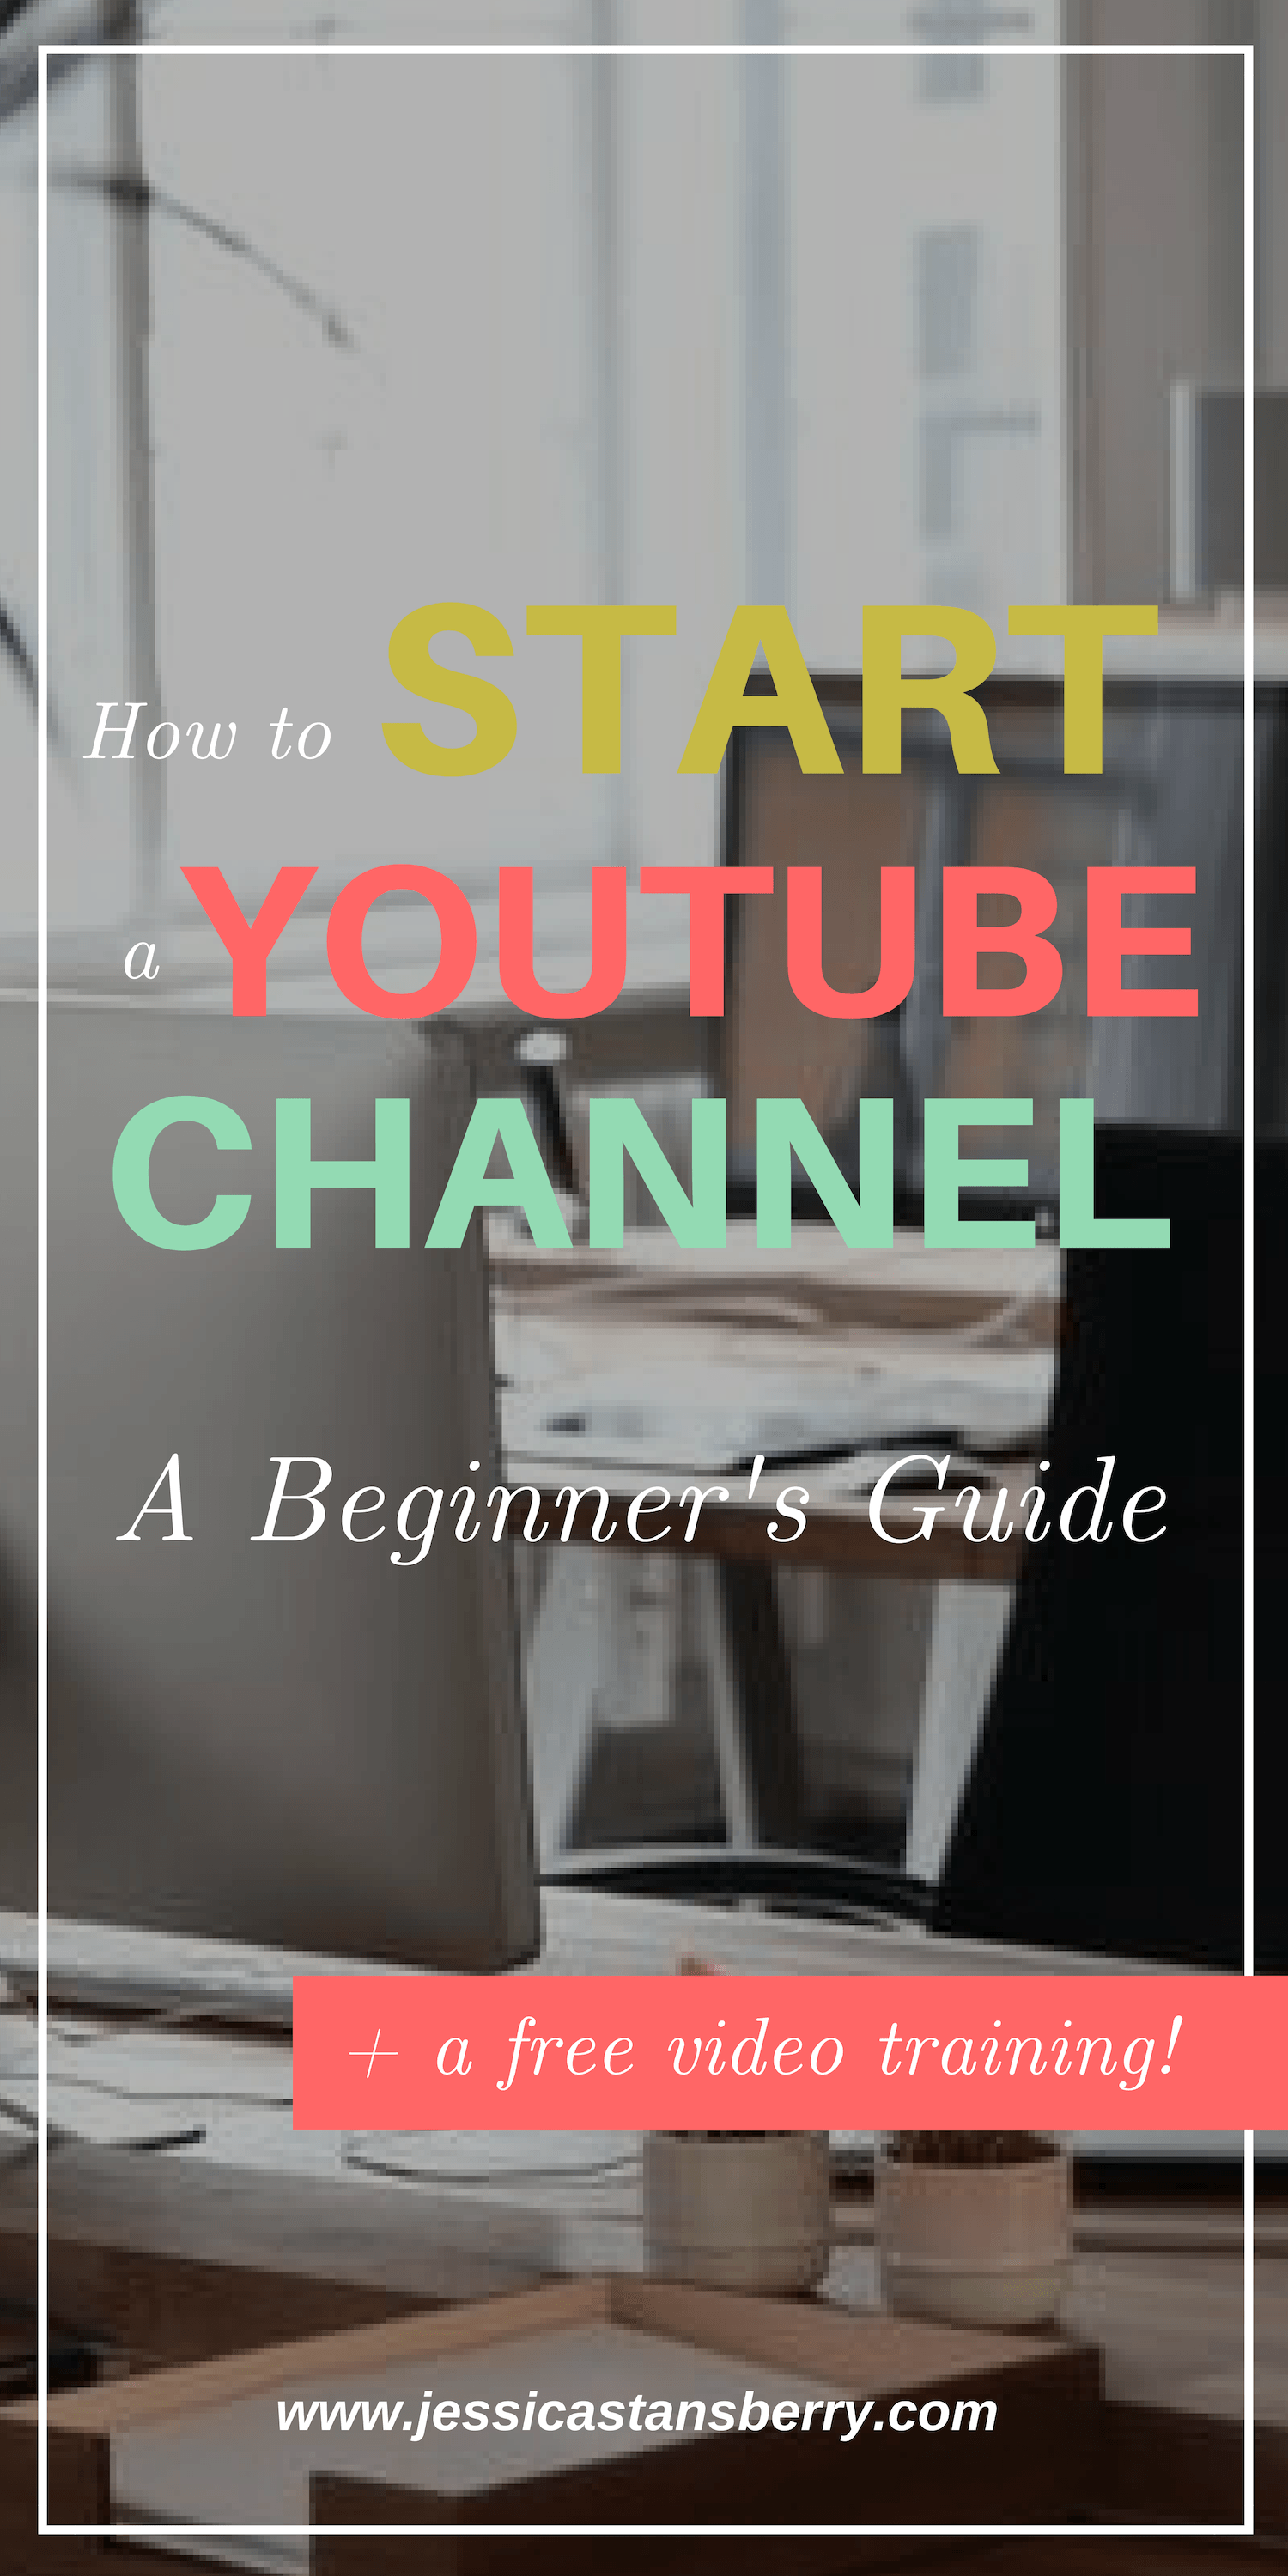 How To Start A Youtube Channel A Beginner S Guide Jessica Stansberry Start Youtube Channel Youtube Marketing Strategy Youtube Channel Ideas